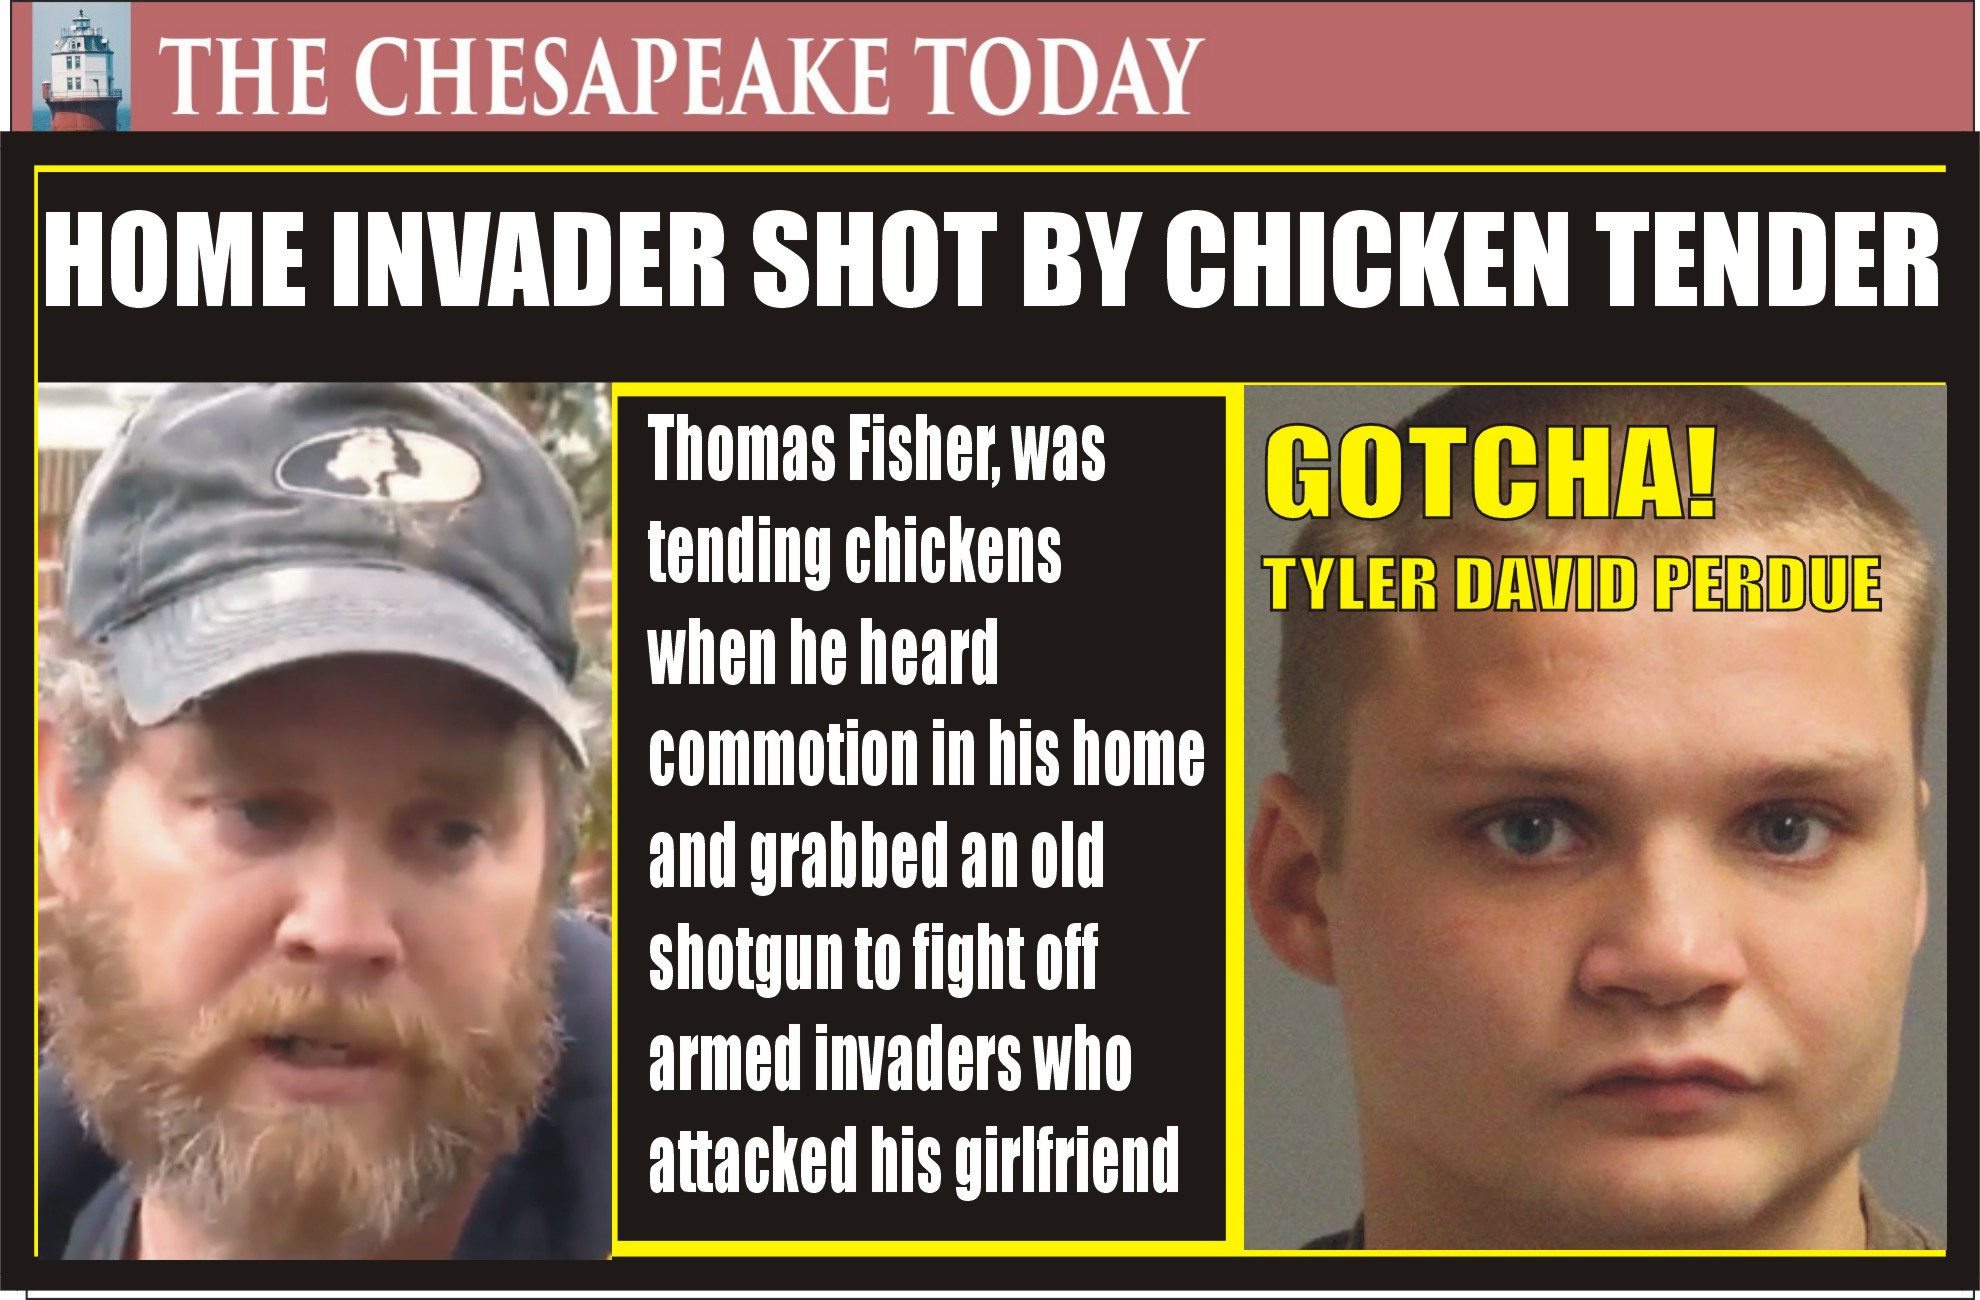 HOME INVADER SHOT BY CHICKEN TENDER; TYLER PERDUE ARRESTED